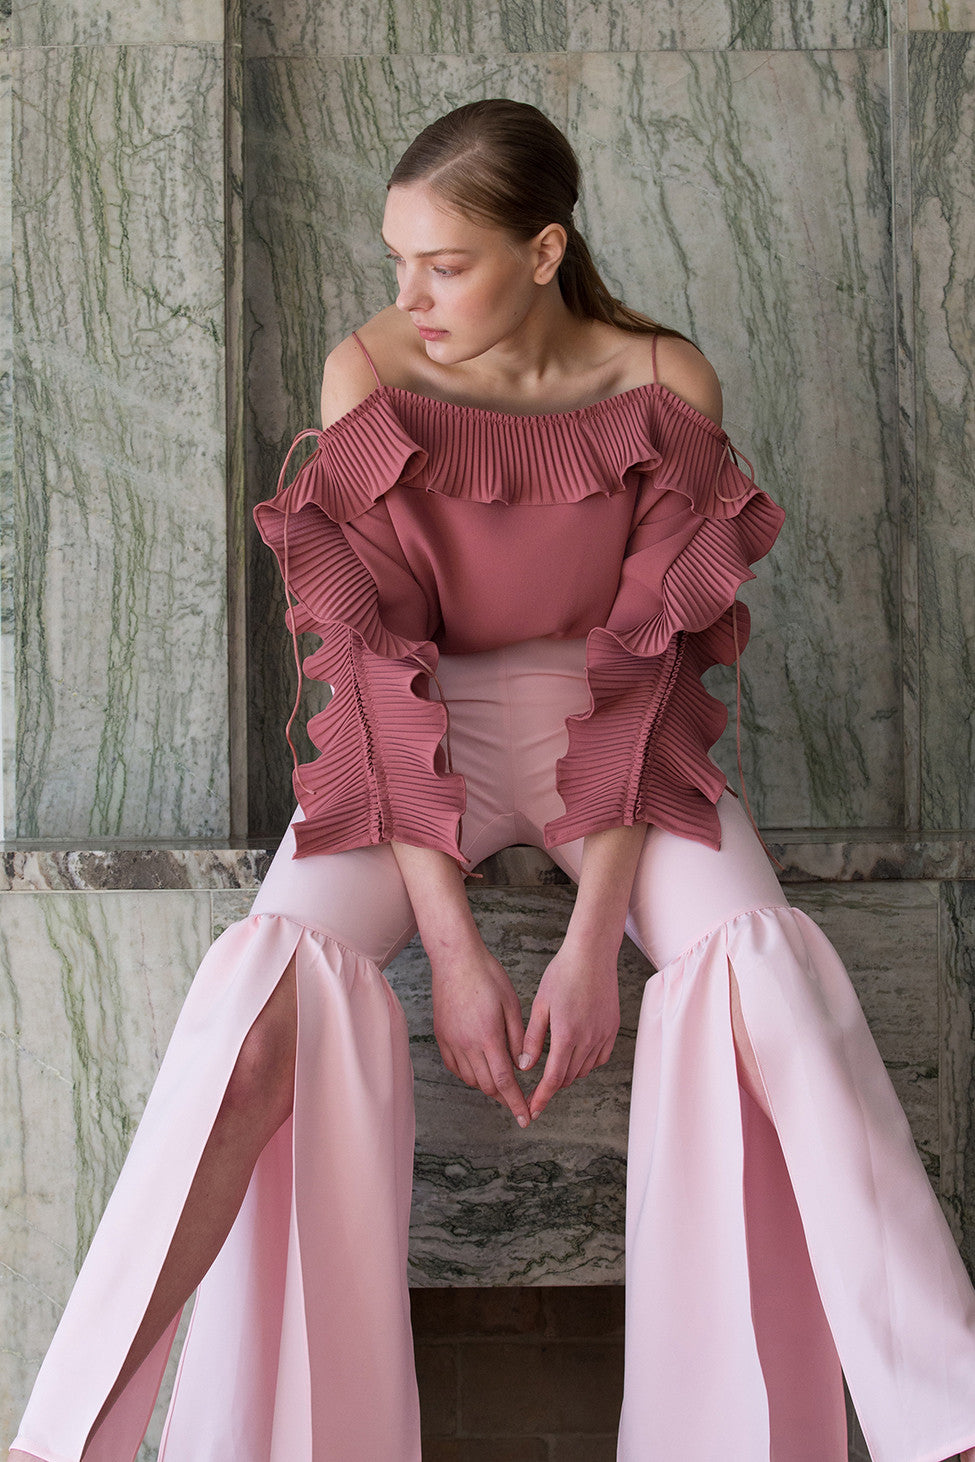 The Cheysa Pant in Pink featuring peplum leg trouser, gently flare out hem with side slits. Slim-fitting at thigh. High rise. Centre-front concealed zip fly and hook closure.